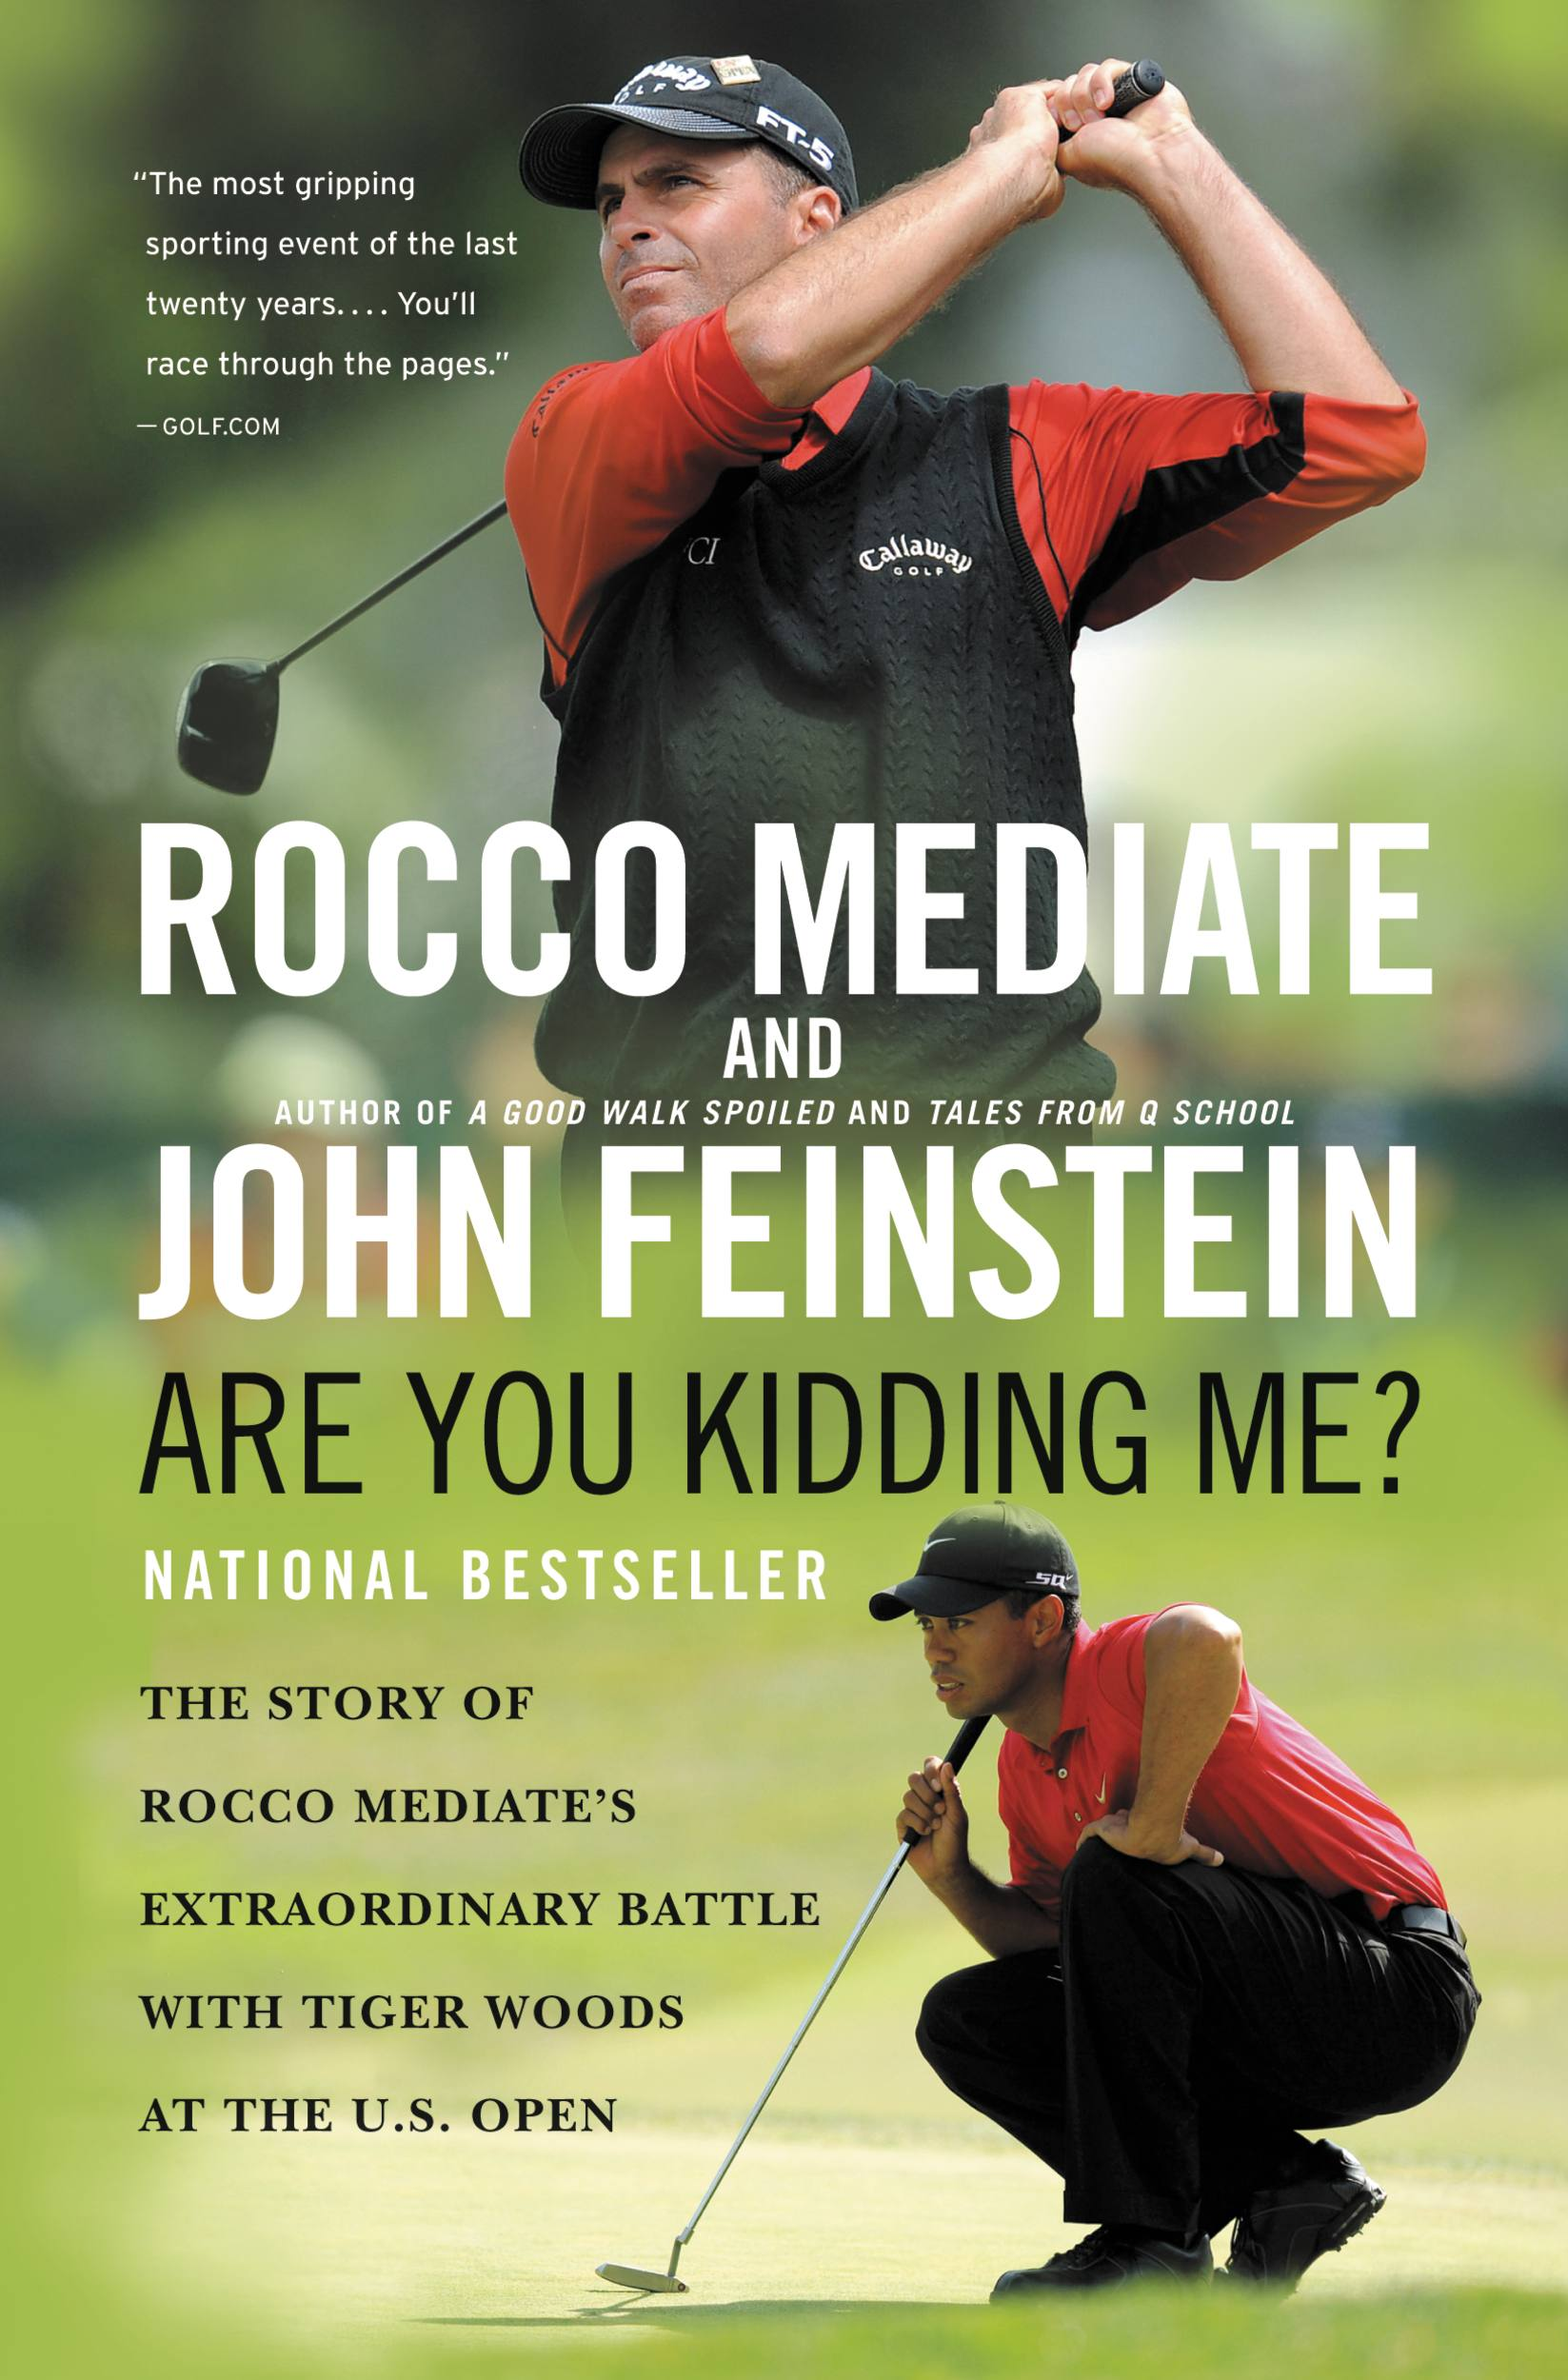 Are You Kidding Me? The Story of Rocco Mediate's Extraordinary Battle with Tiger Woods at the US Open